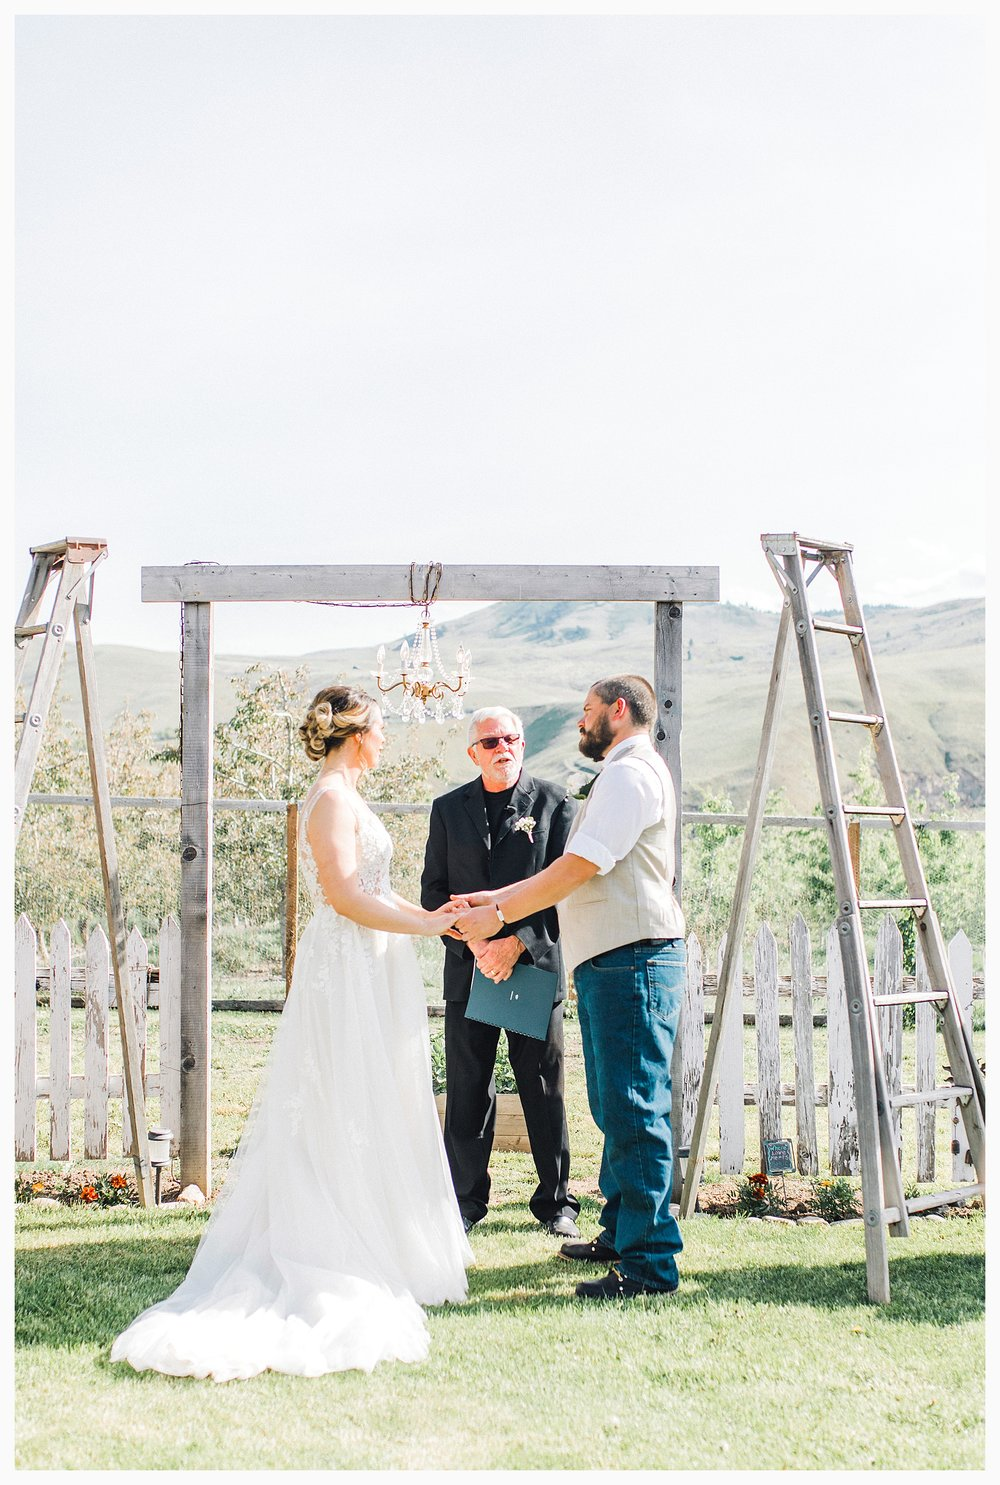 Rustic barn wedding in Wenatchee Washington at Sunshine Ranch on Easy Street, Emma Rose Company Seattle PNW Light and Airy Wedding Photographer_0062.jpg